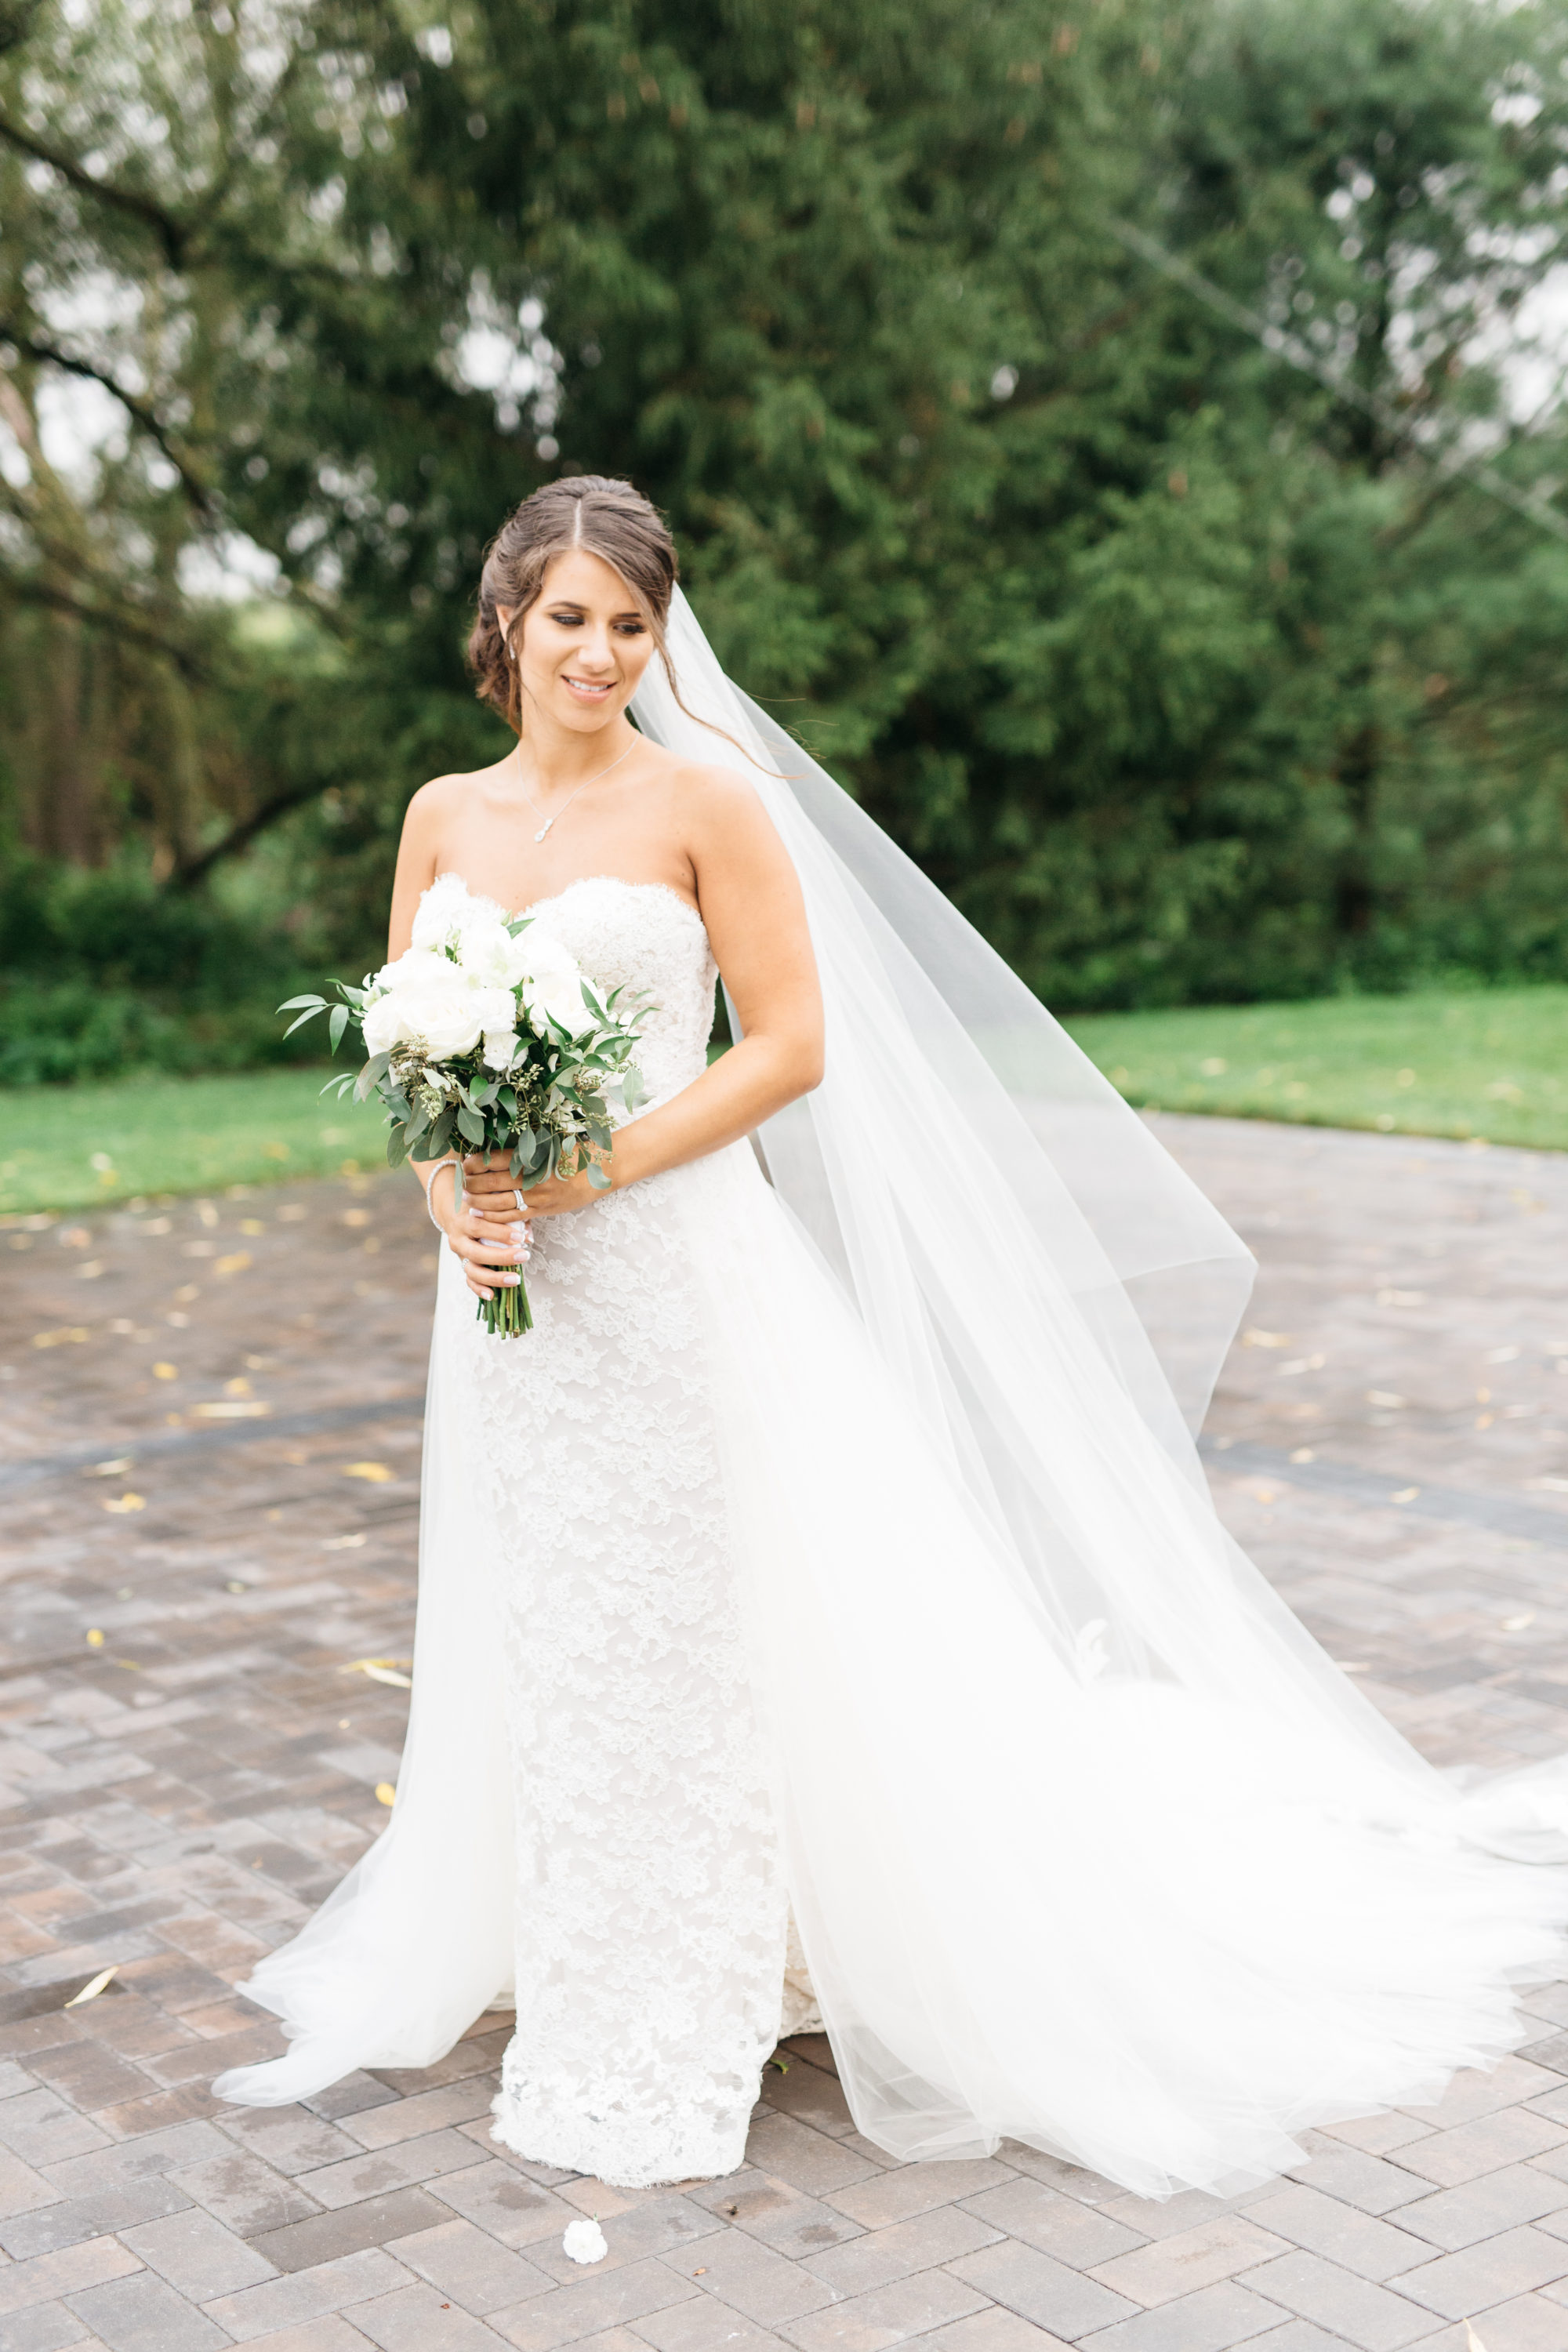 Bride portraits at The Arlington Estate